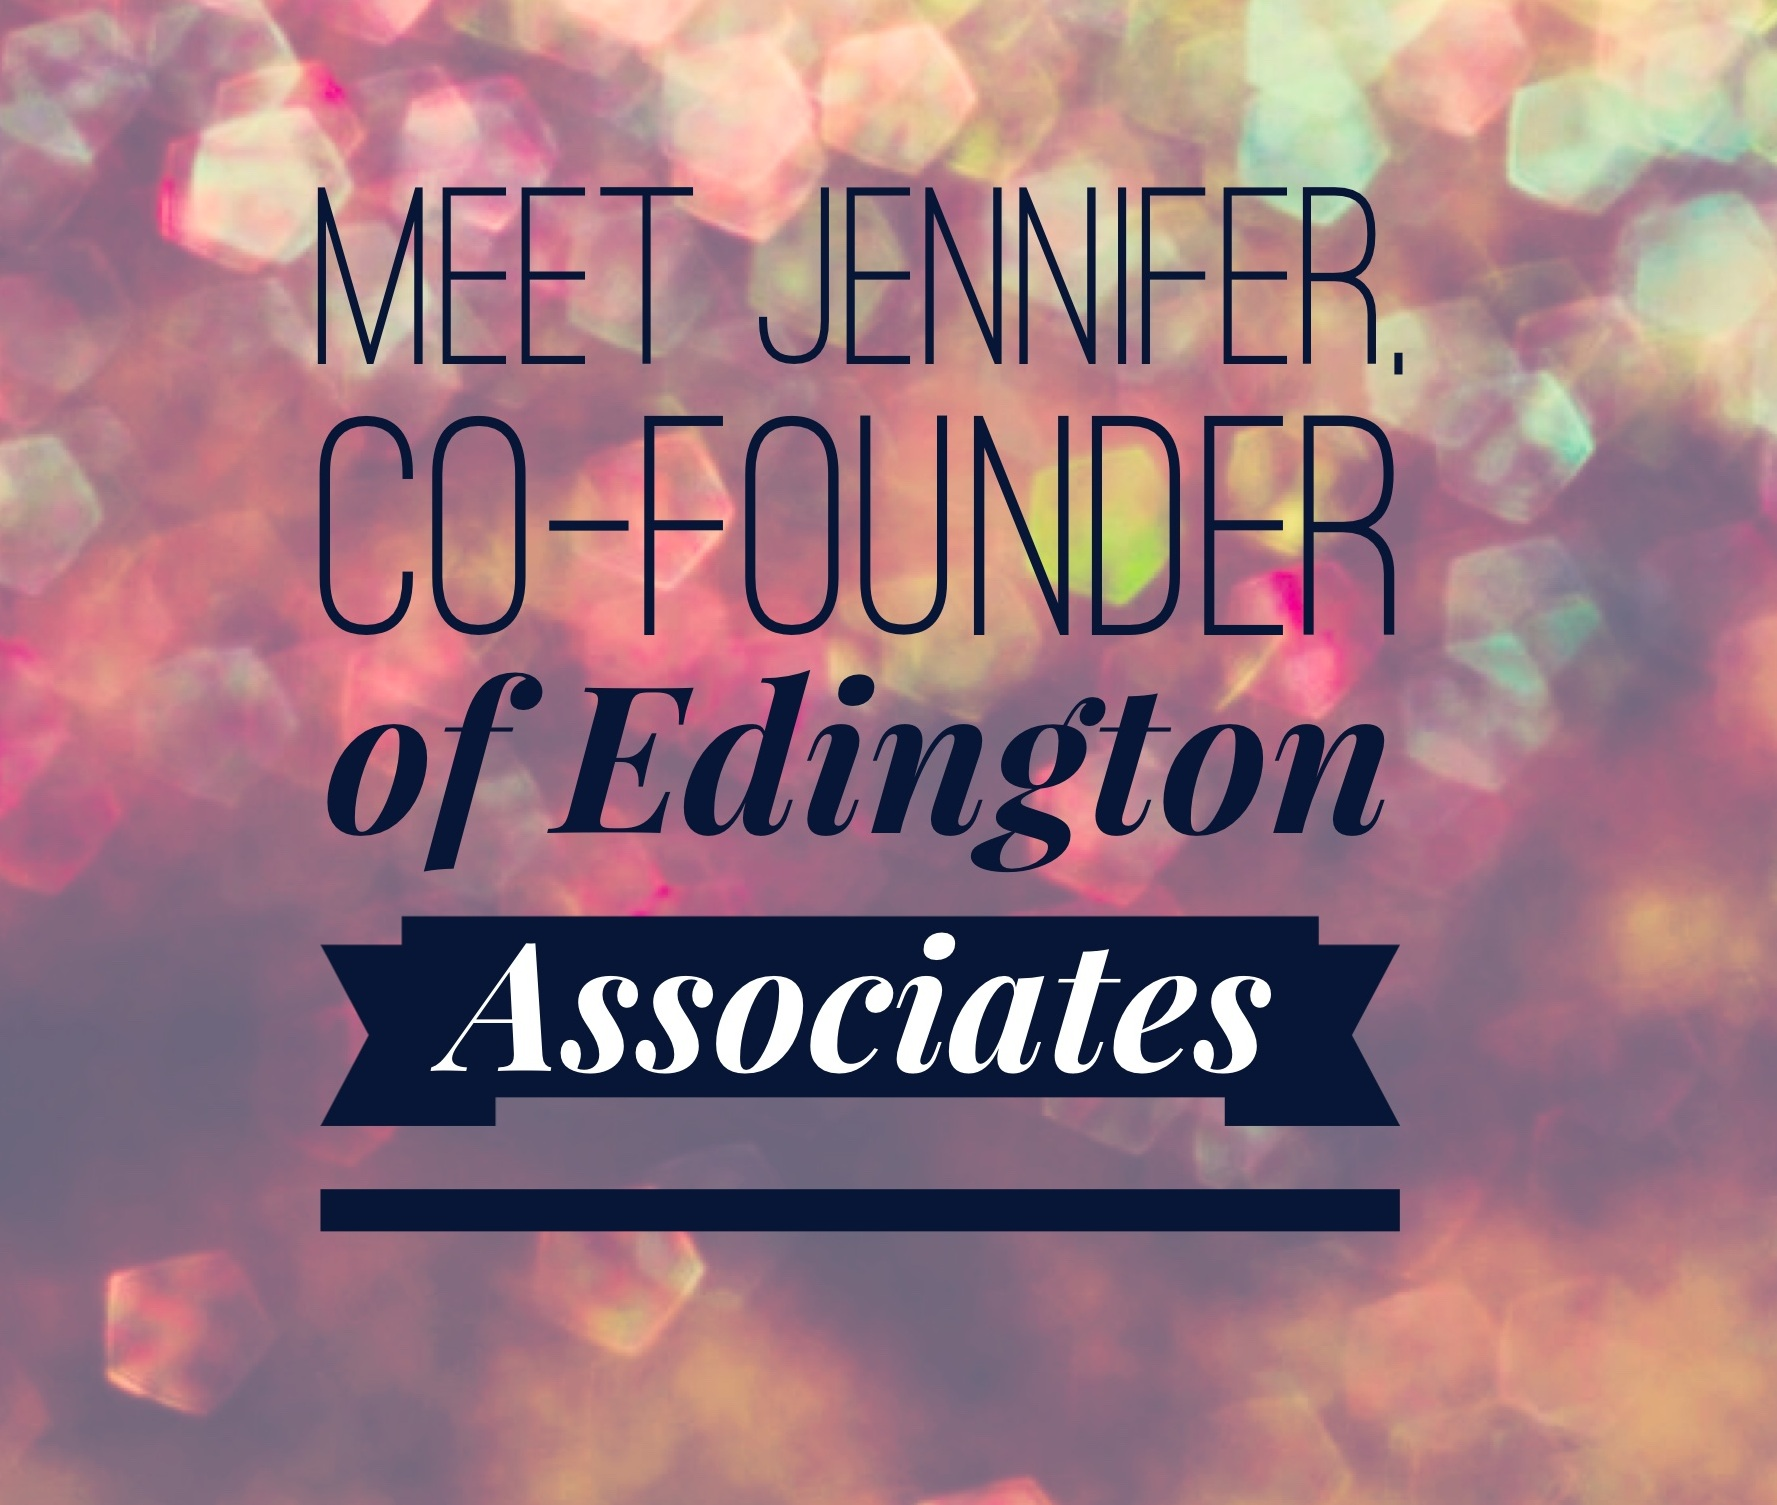 Interview with Jennifer Pitts, Co-Founder and Chief Strategy Officer at Edington Associates, LLC.